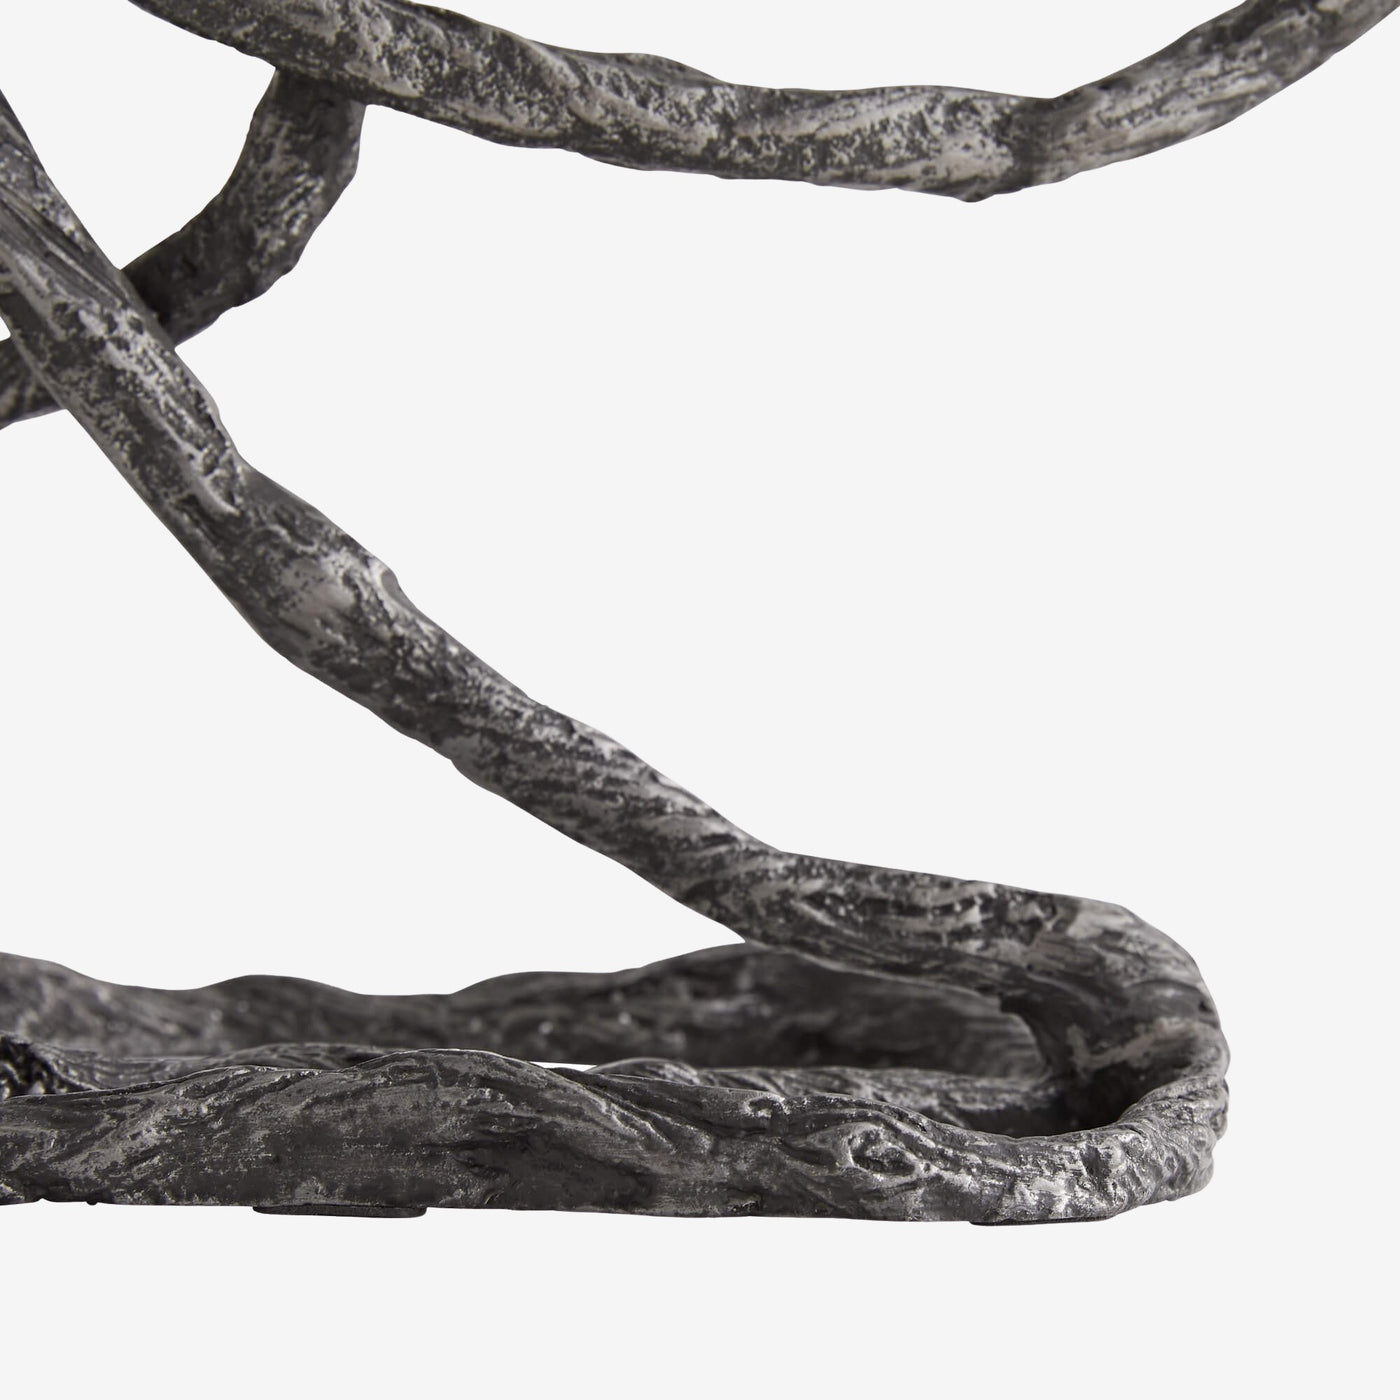 Sculpture Twisted Vine, Iron